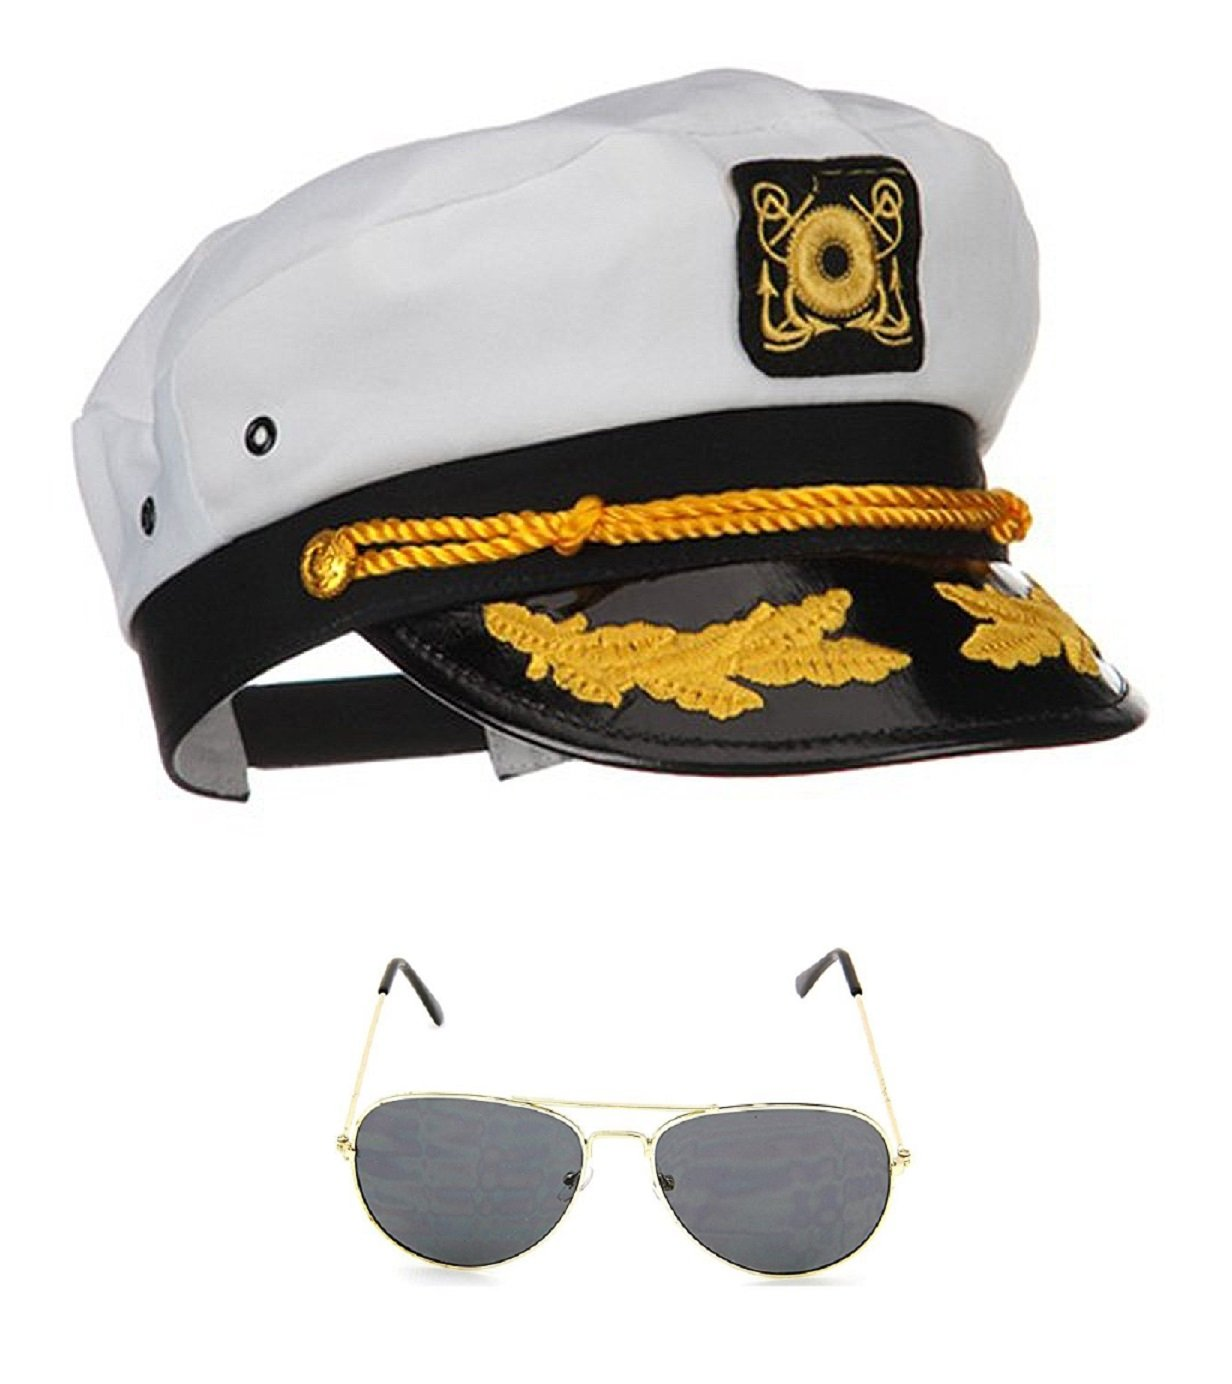 Yacht Boat Captain Hat Sailor Ship Cap White Gold and Gold Aviator Sunglasses by Nicky Bigs Novelties (Image #2)